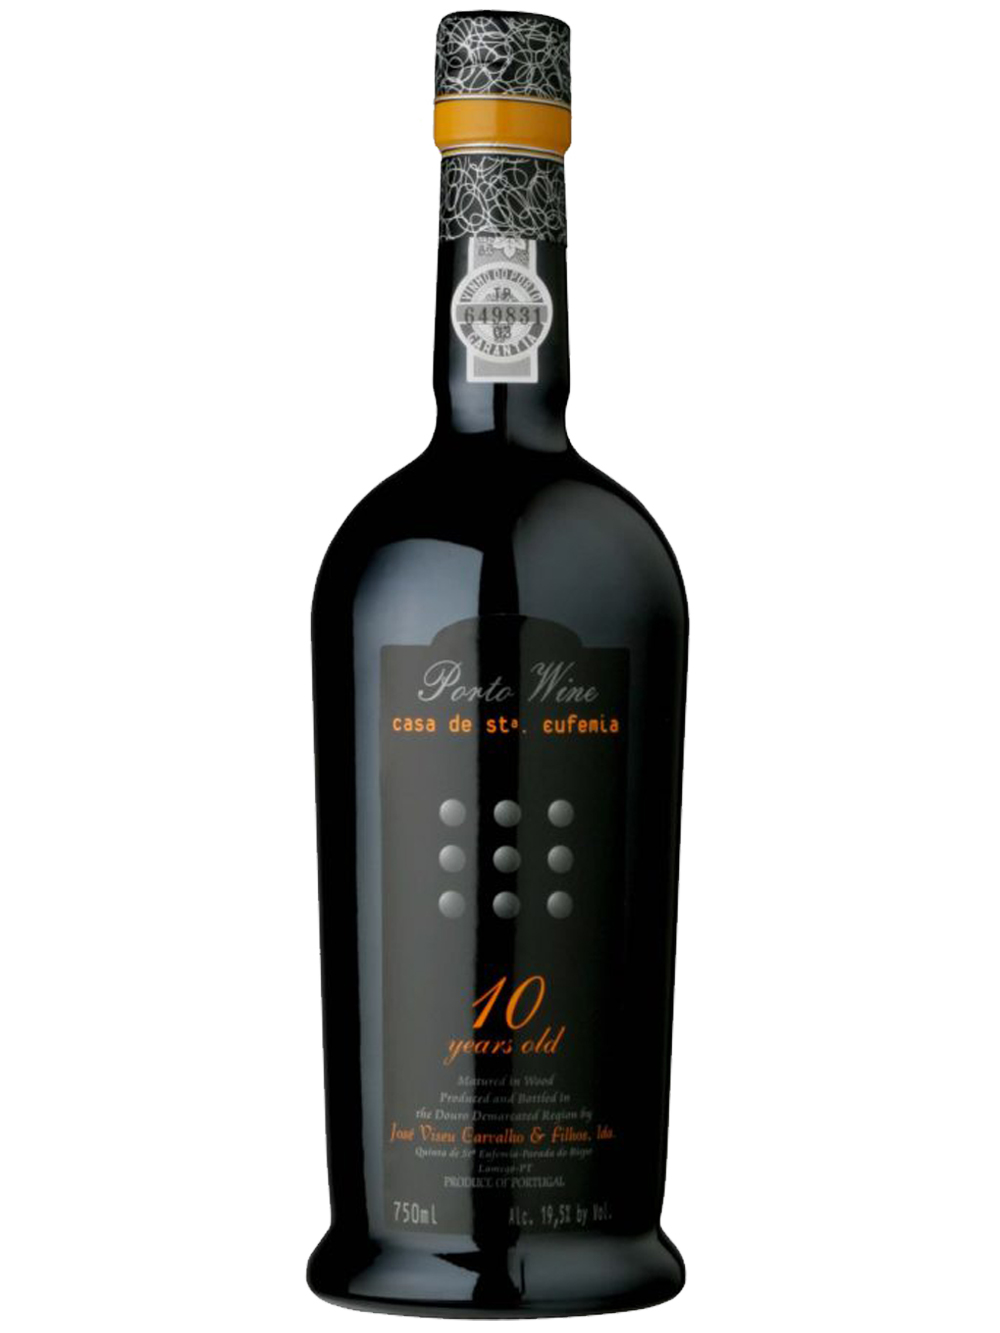 Tawny Port 10 Years Old